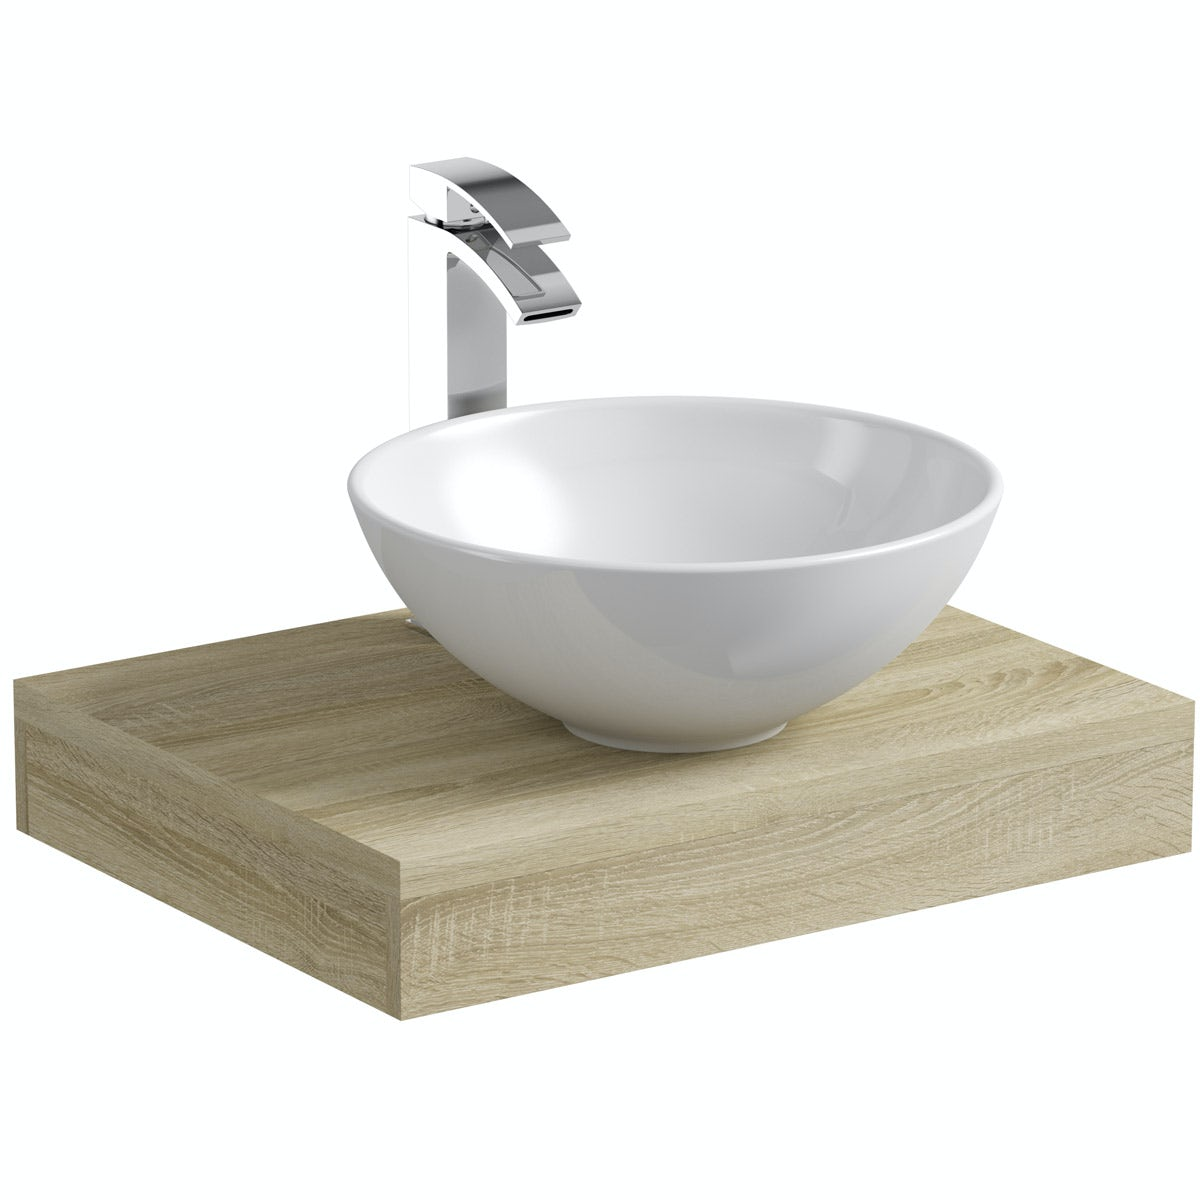 Mode Orion oak countertop shelf with Derwent basin, tap and waste